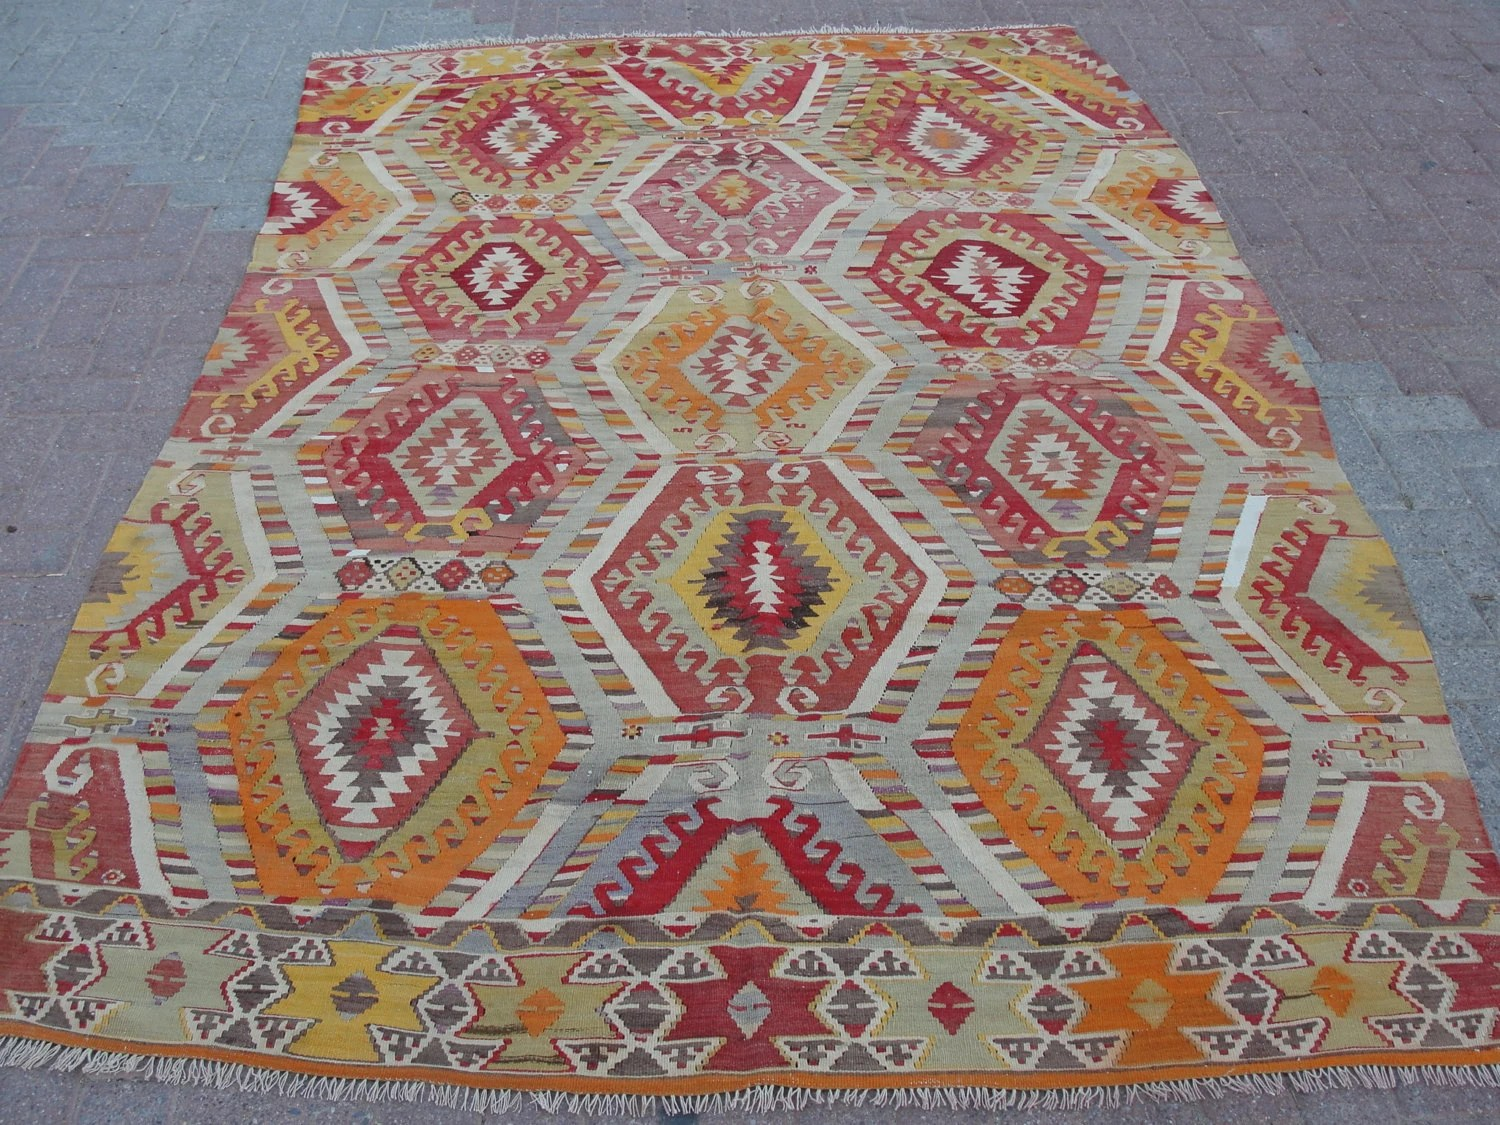 "VINTAGE Turkish Area Rug Carpet, Antalya Rug Kilim,Daimond Design, Natural Wool 70"" X 109"" - misterpillow"